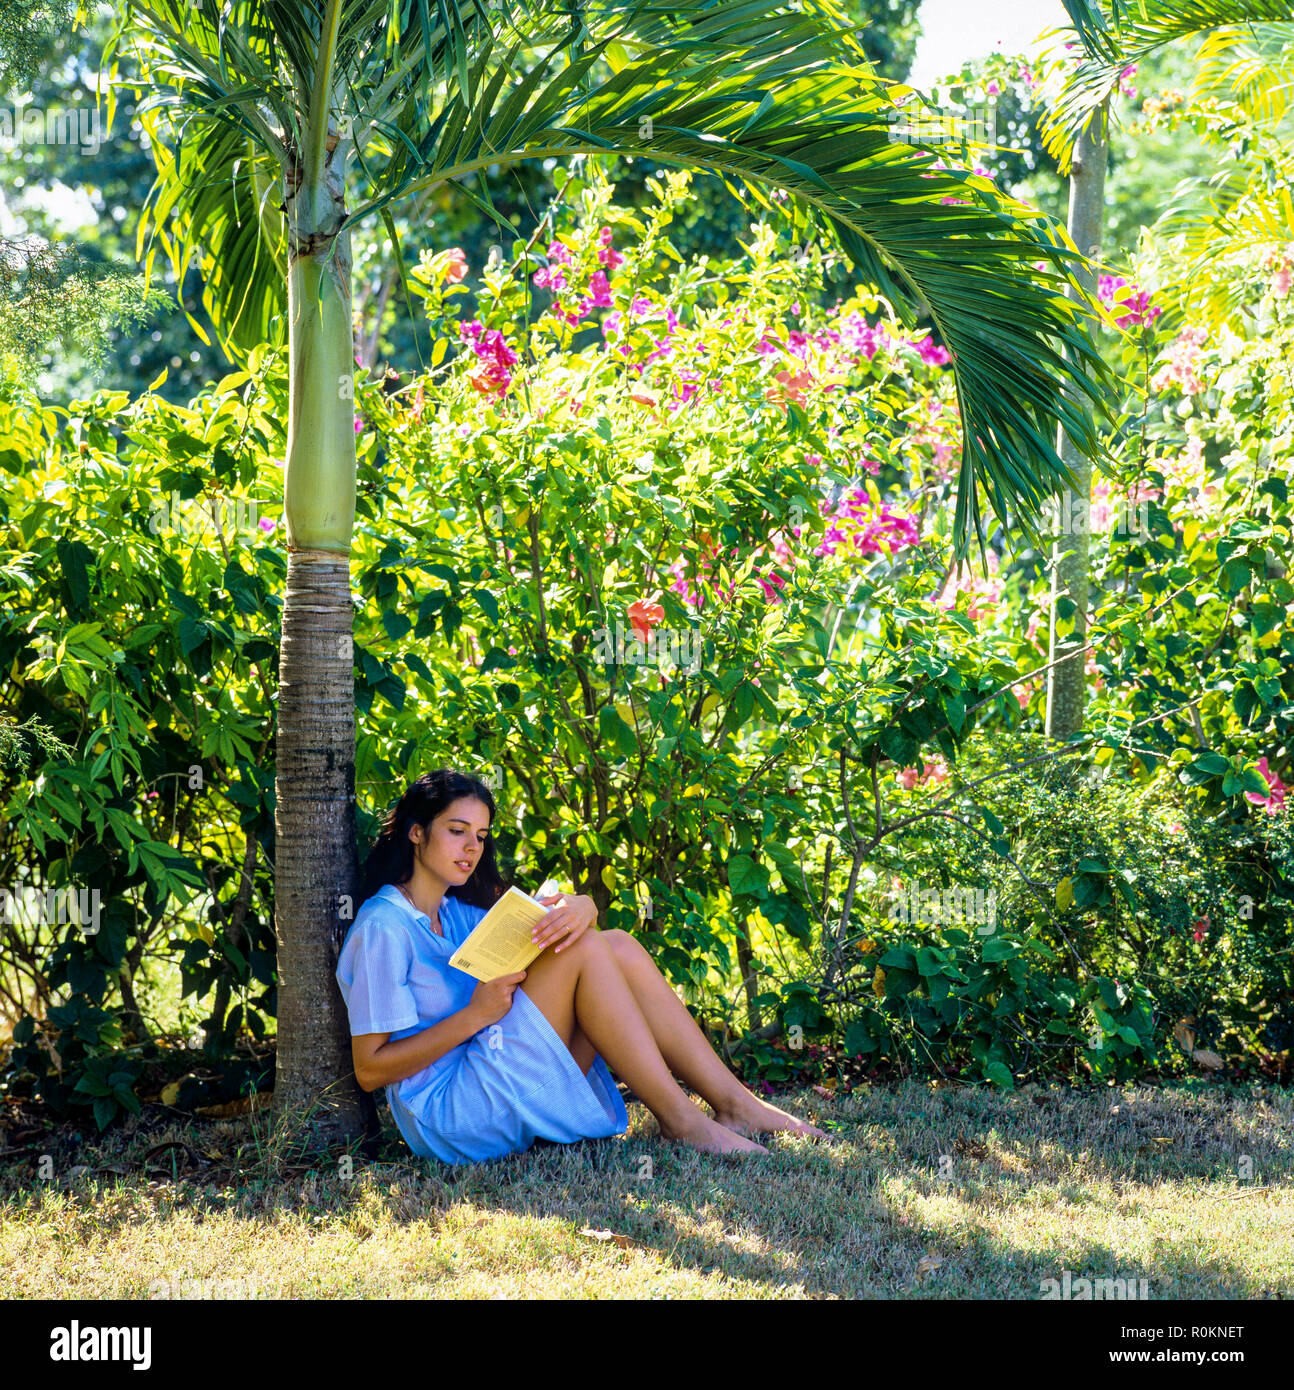 Young woman sitting in tropical garden and reading a book, Guadeloupe, French West Indies, - Stock Image